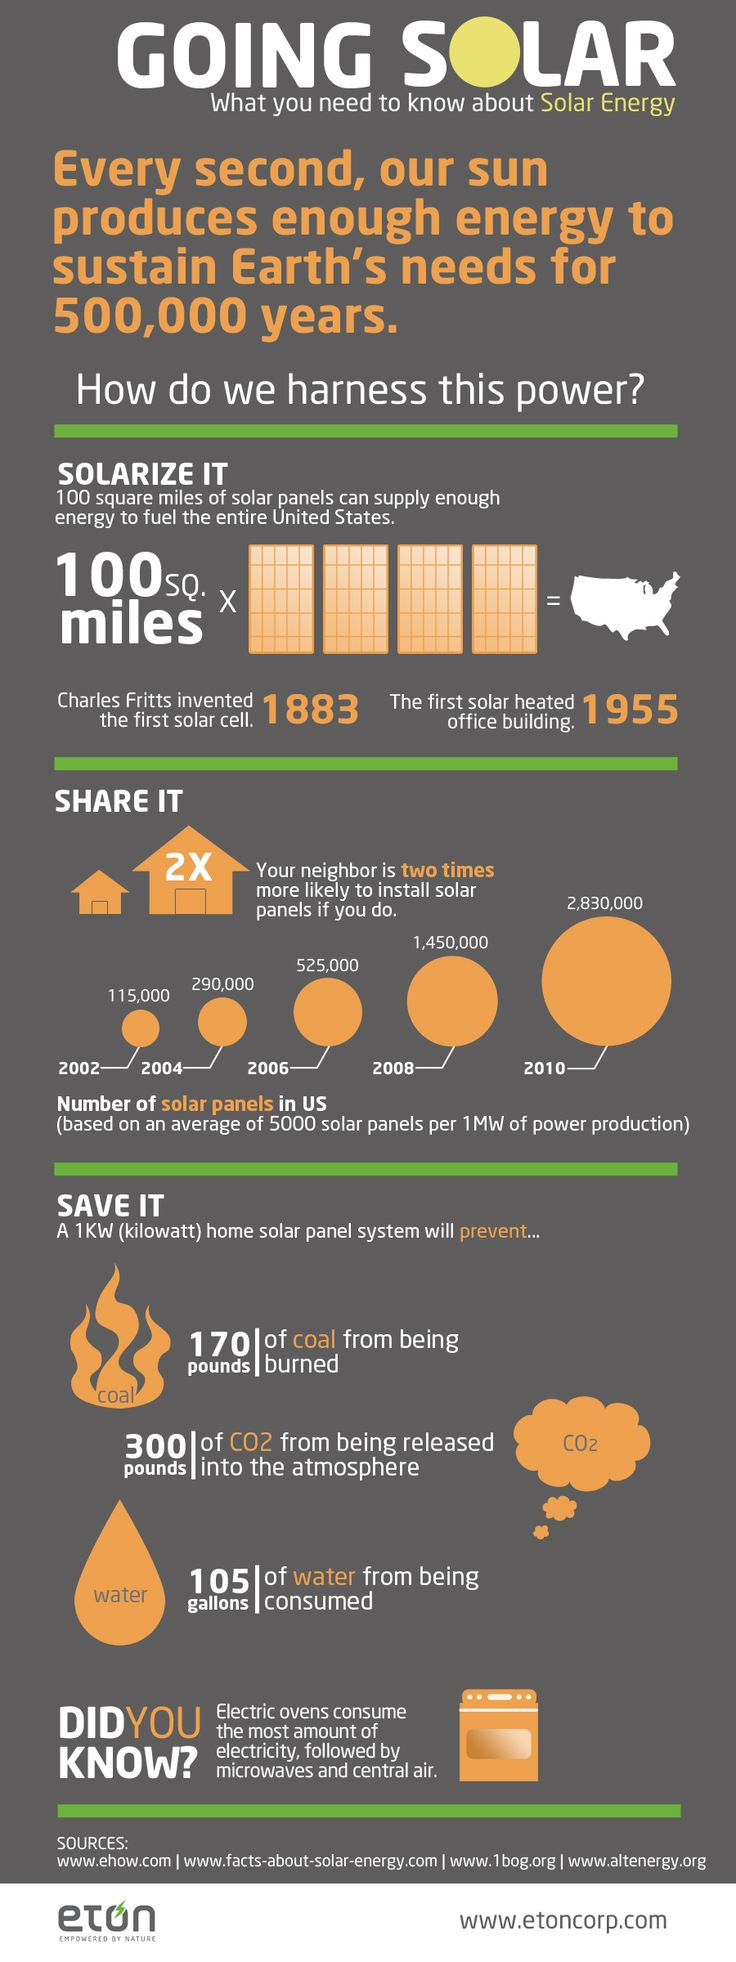 17 best images about infographic on pinterest facebook for Solar energy information for students